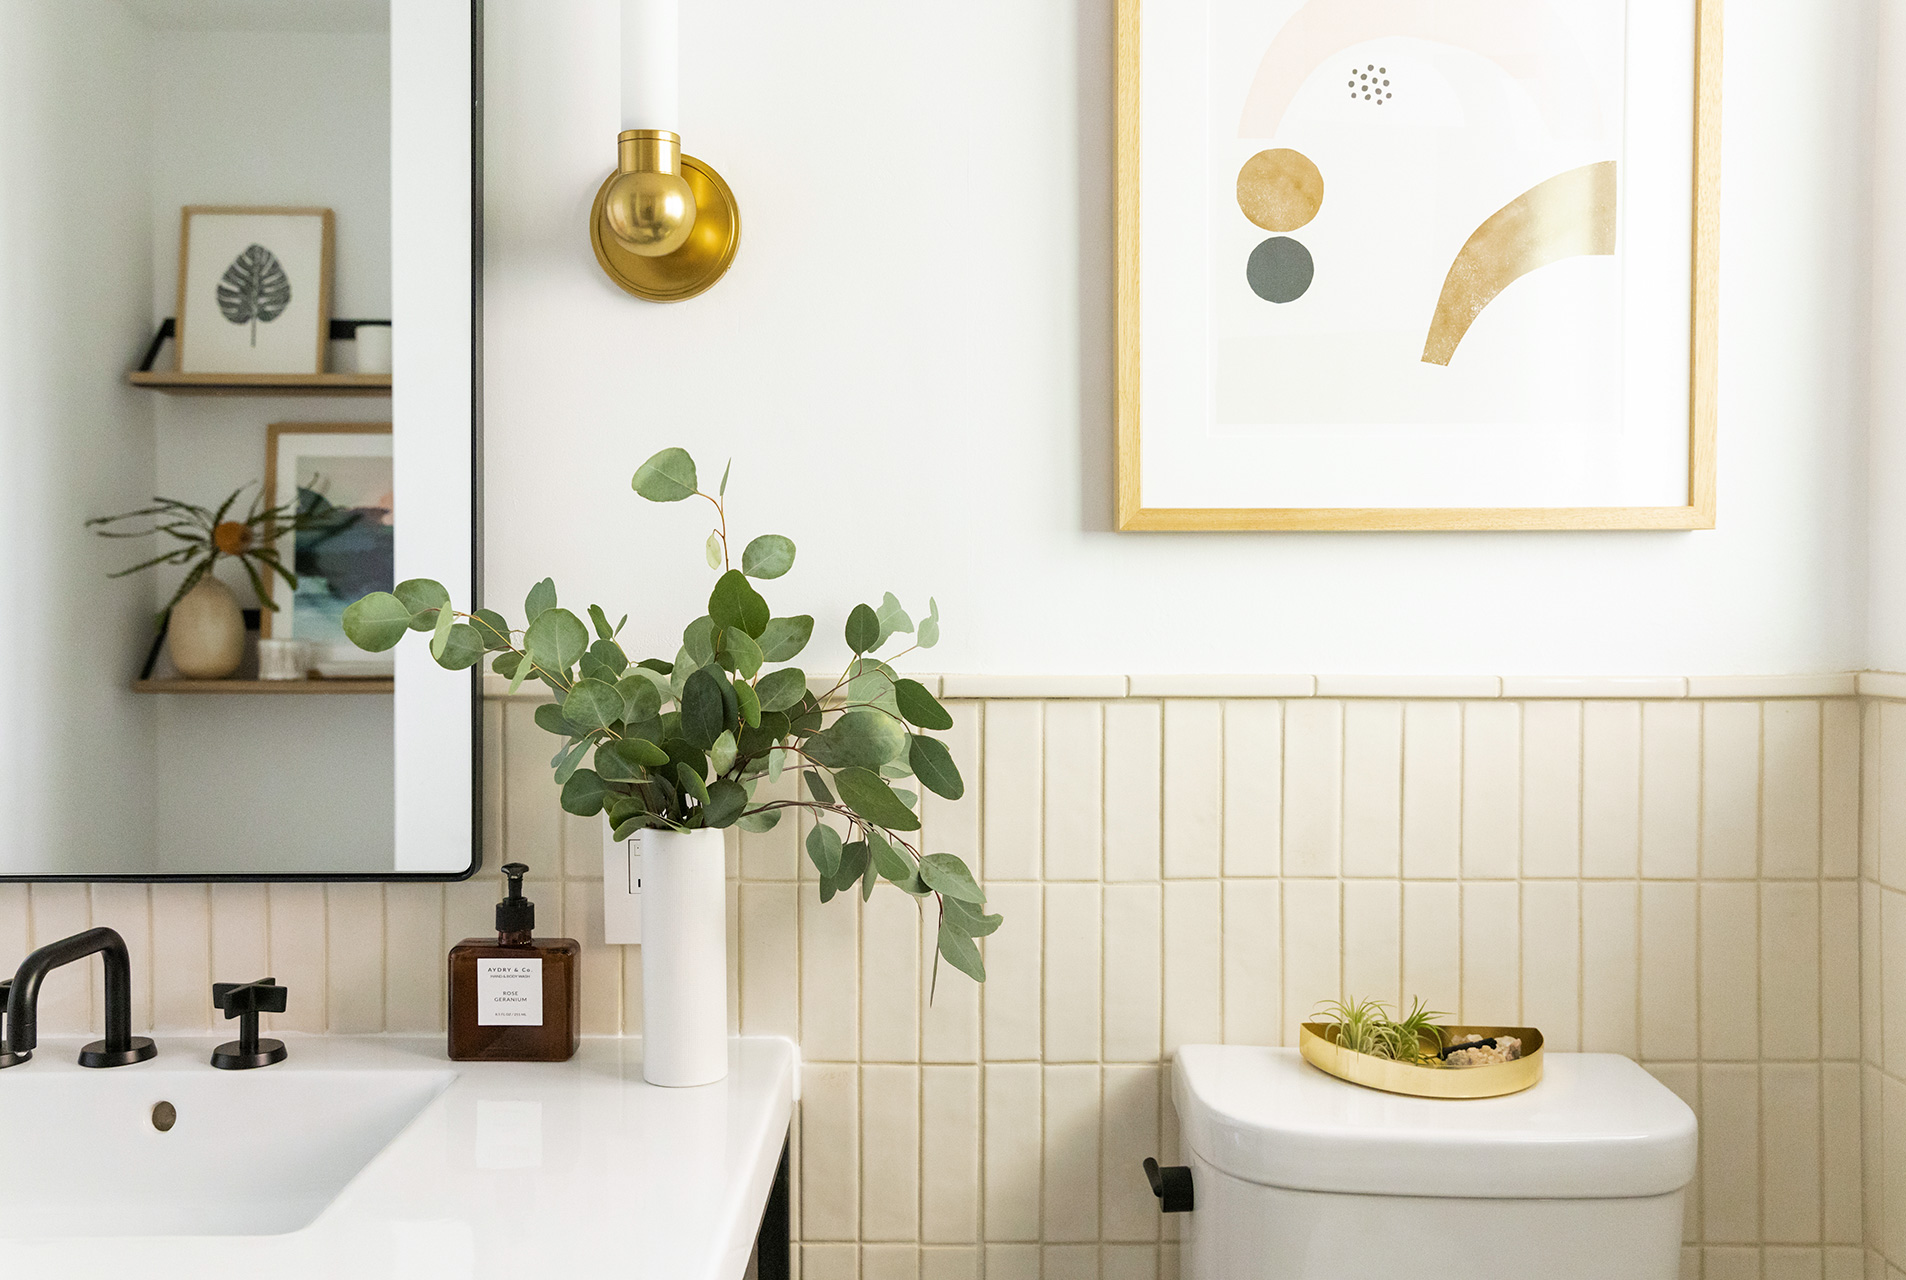 bathroom sink area with plant and home decor